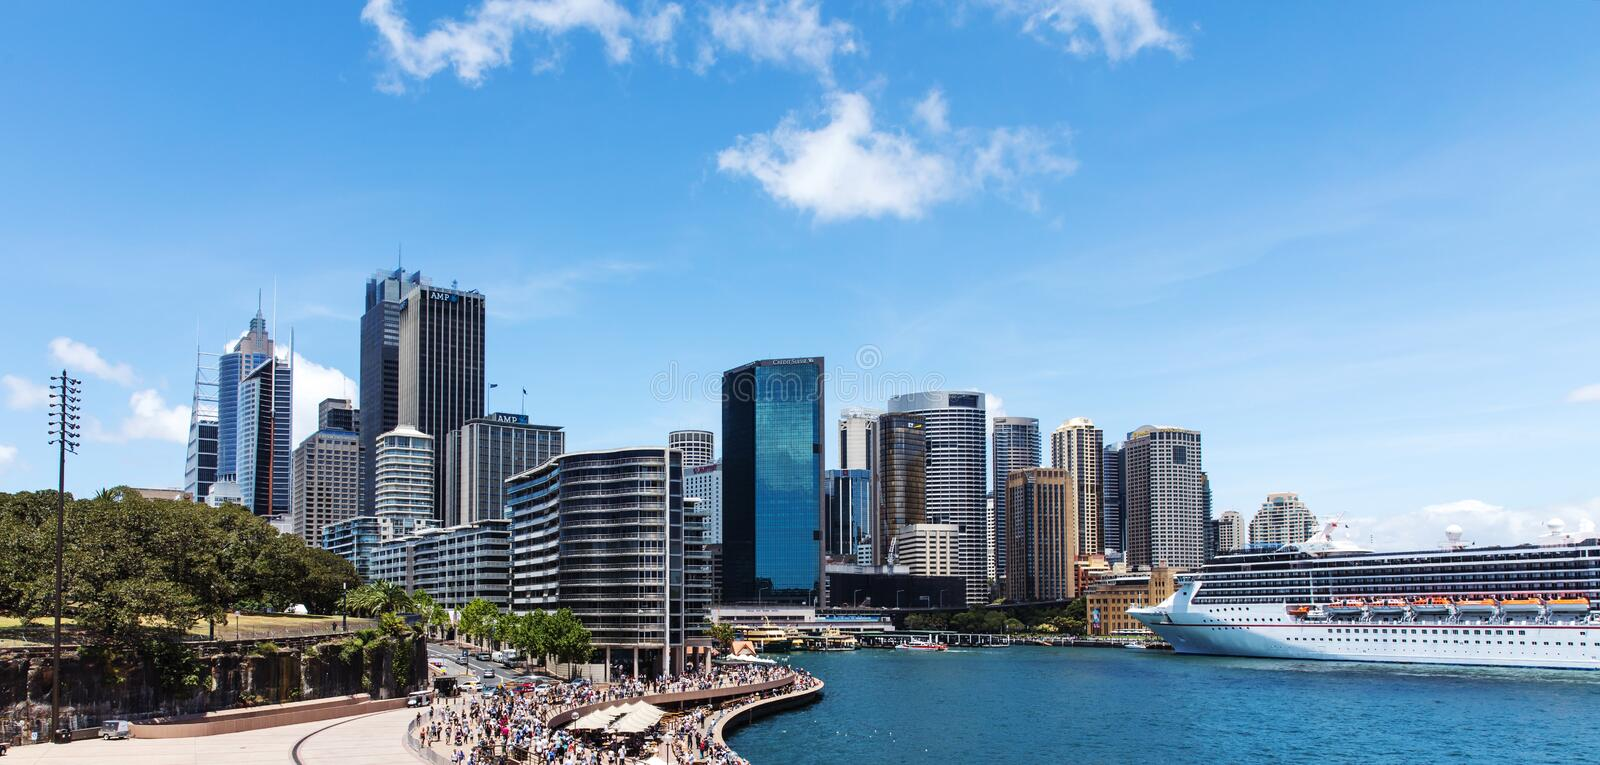 Sydney Skyline Circular Quay. City of Sydney, New South Wales, Australia. View from famous Opera house to Circular Quay. On a sunny day with blue sky with some royalty free stock photos